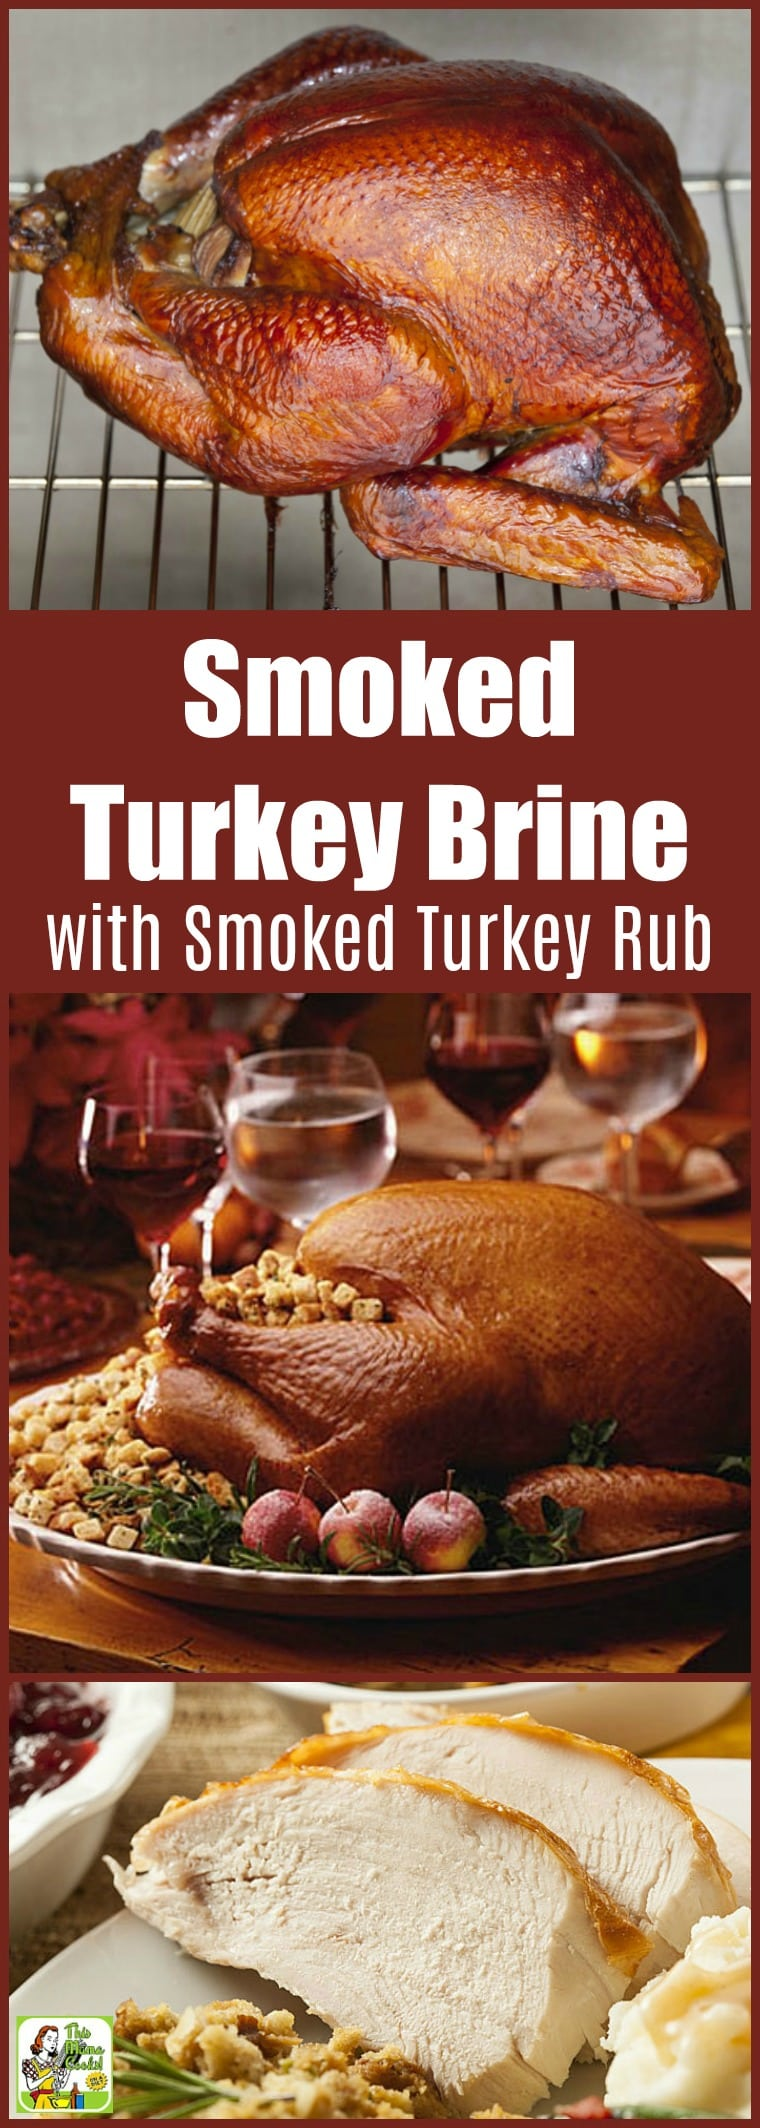 Smoked Turkey Brine with Smoked Turkey Rub Recipe